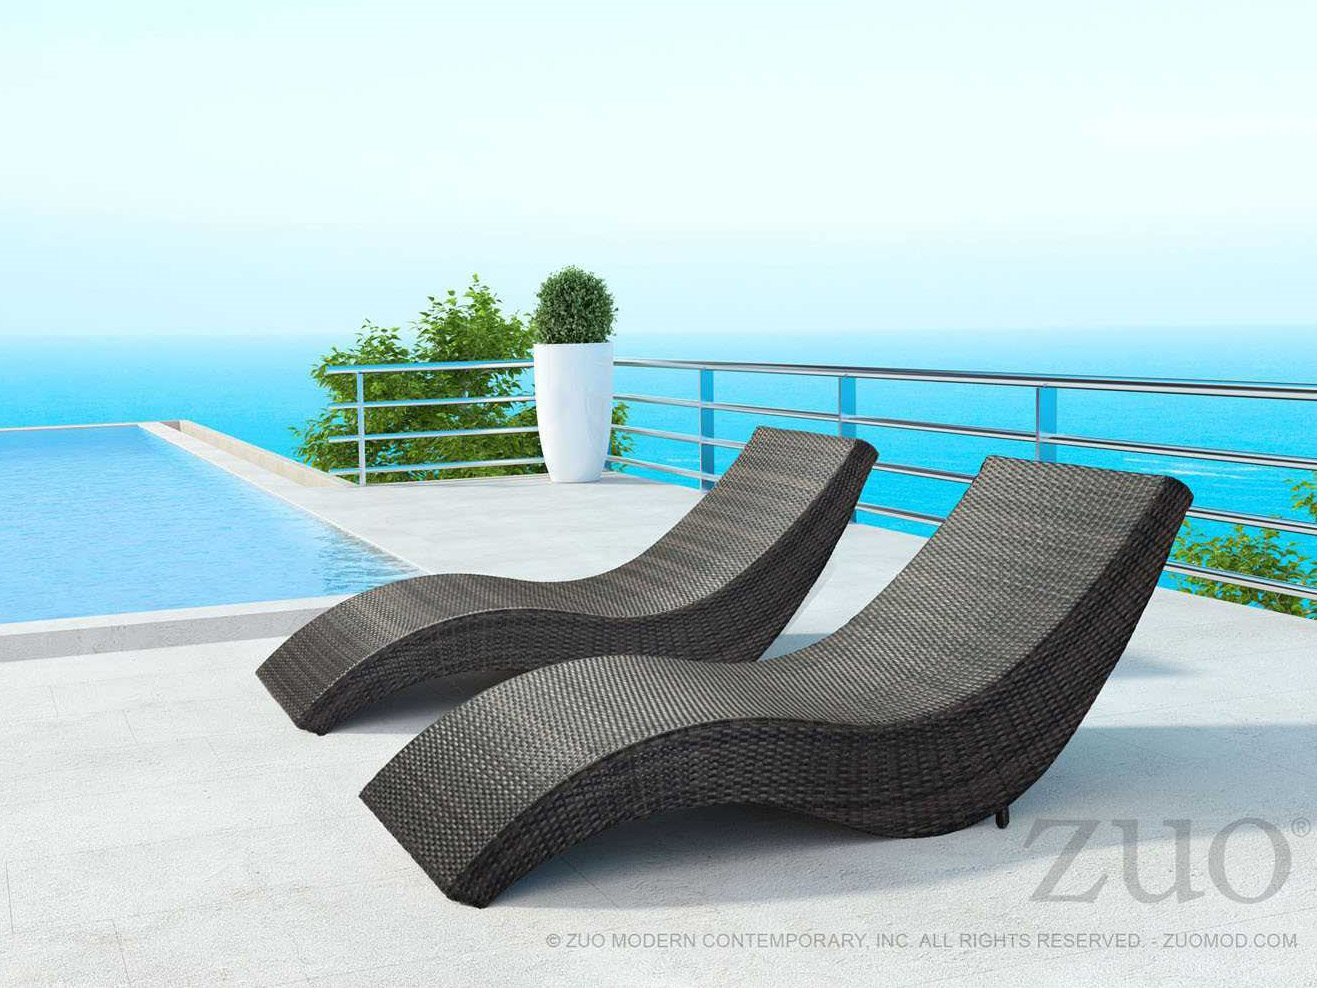 Zuo outdoor hassleholtz beach aluminum wicker beach chaise for Beach chaise lounge